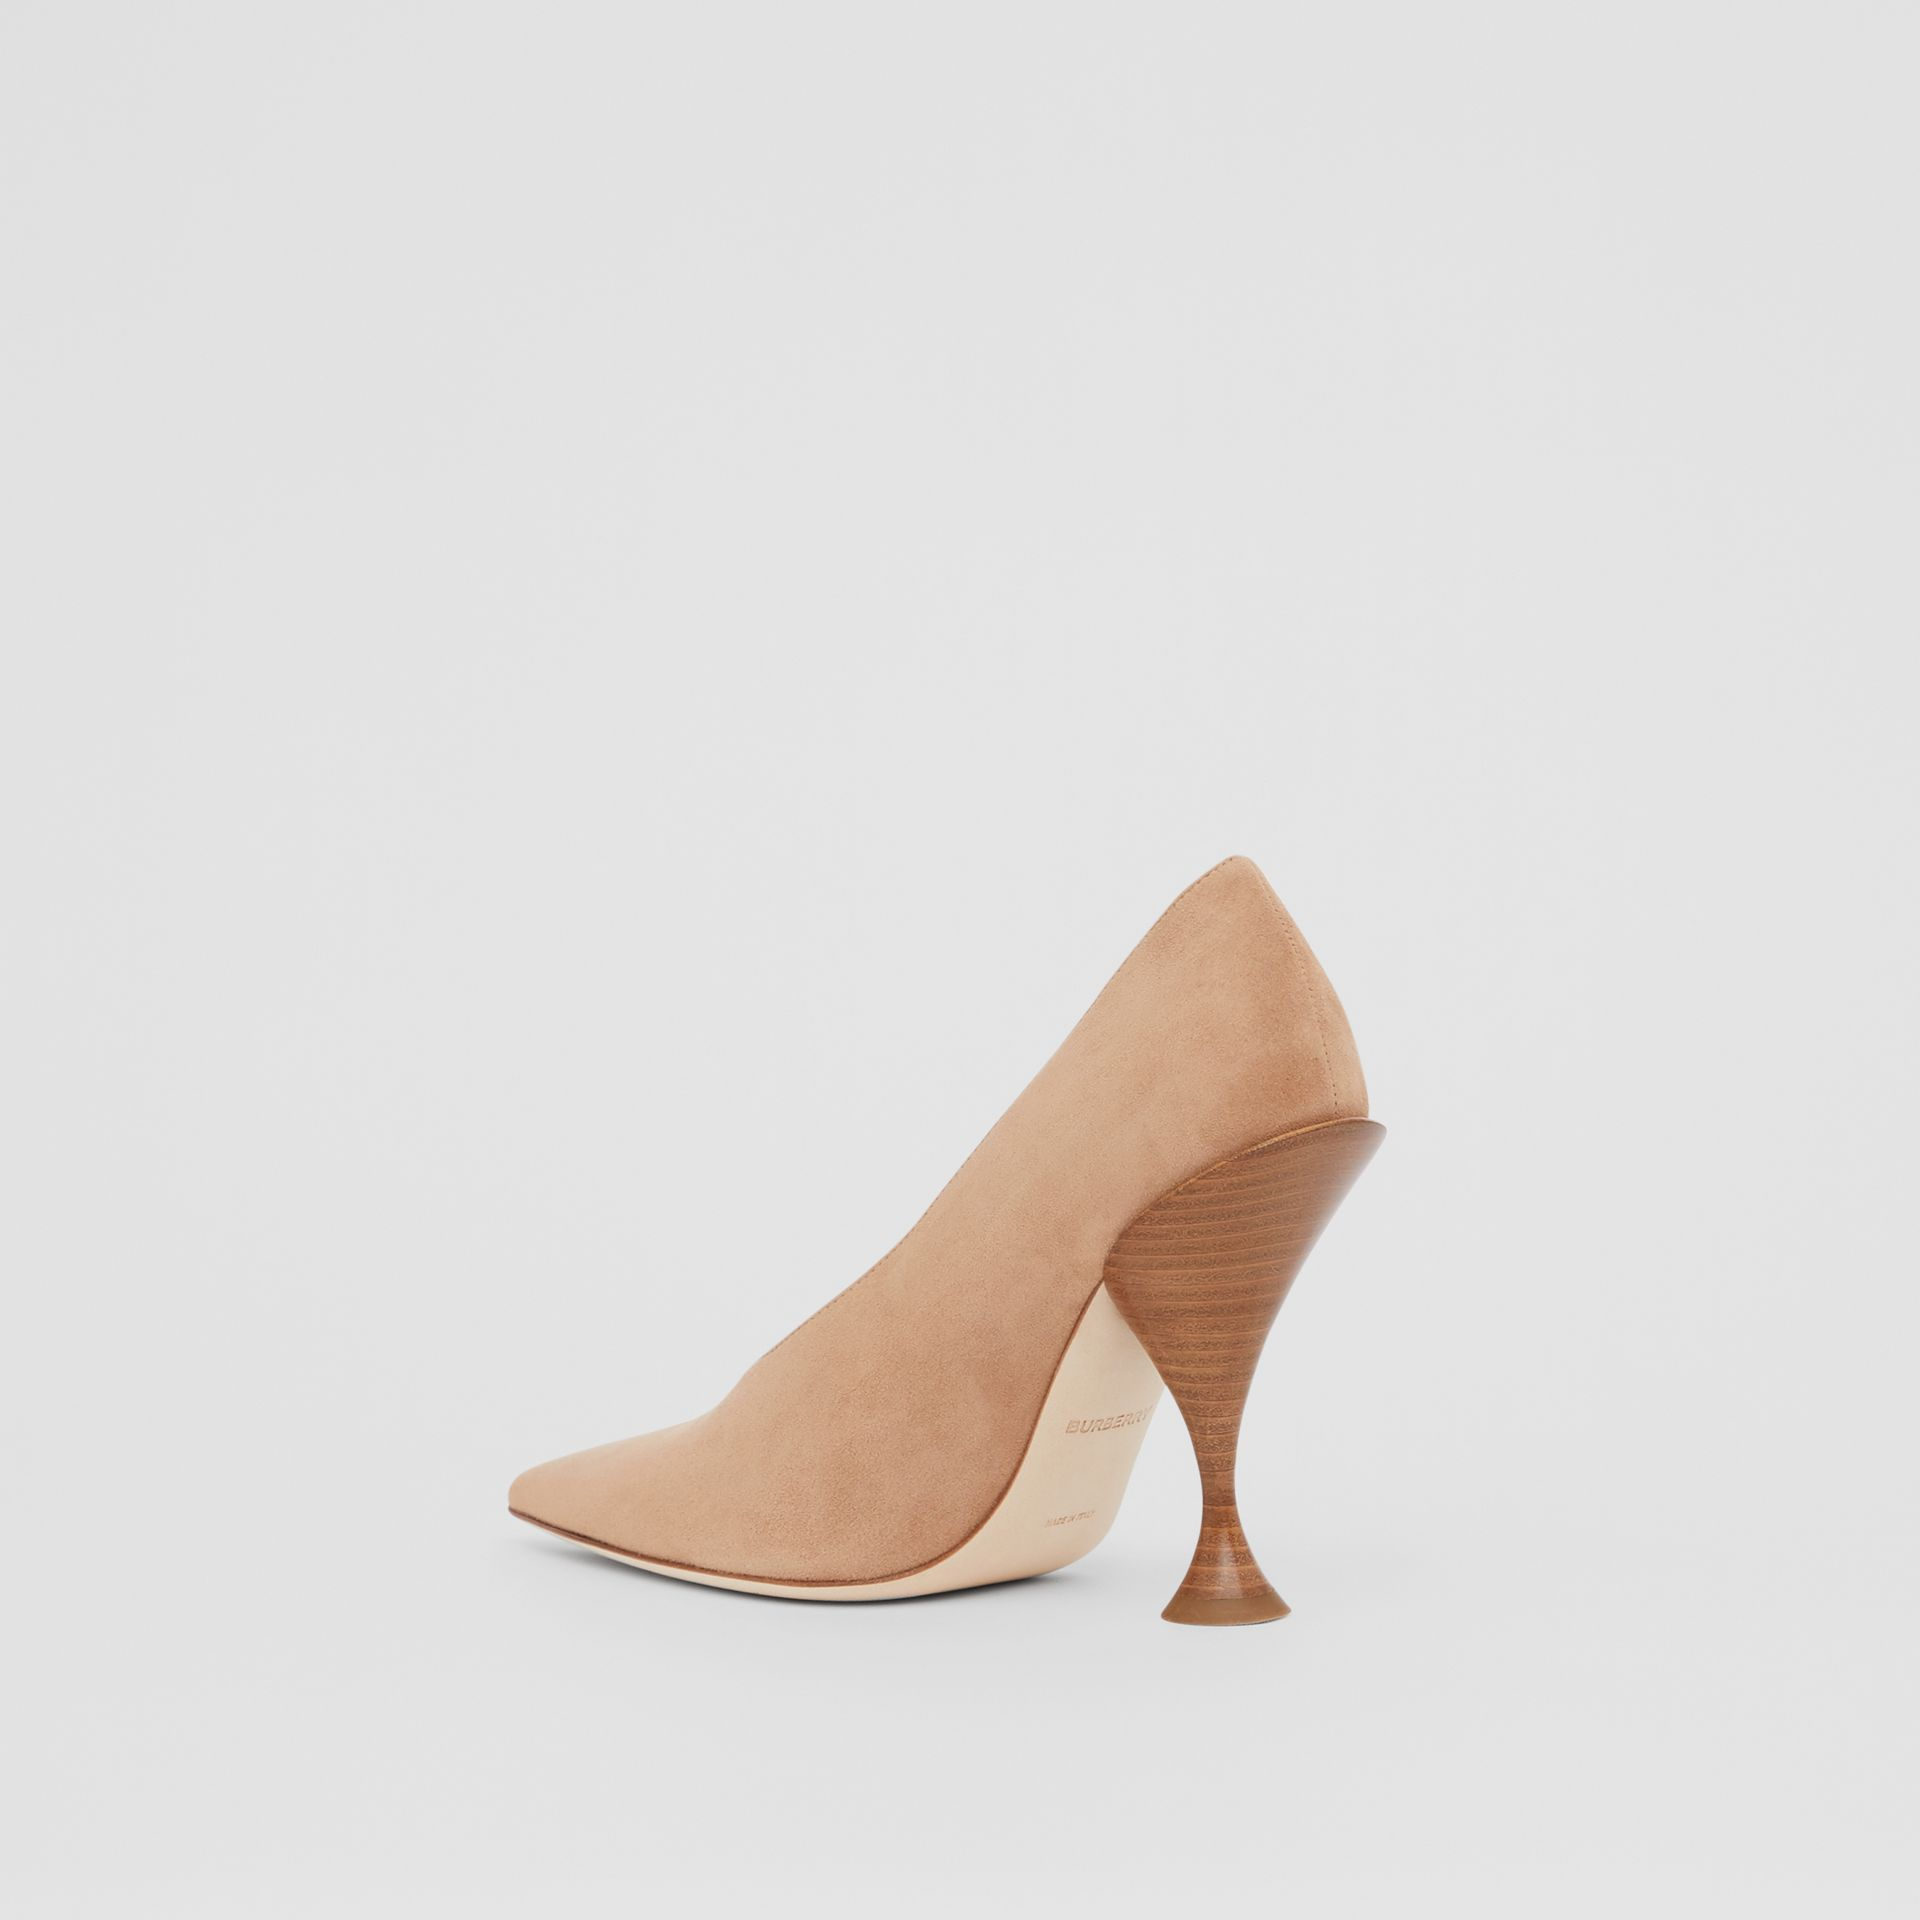 Suede Point-toe Pumps in Warm Camel - Women | Burberry - gallery image 5